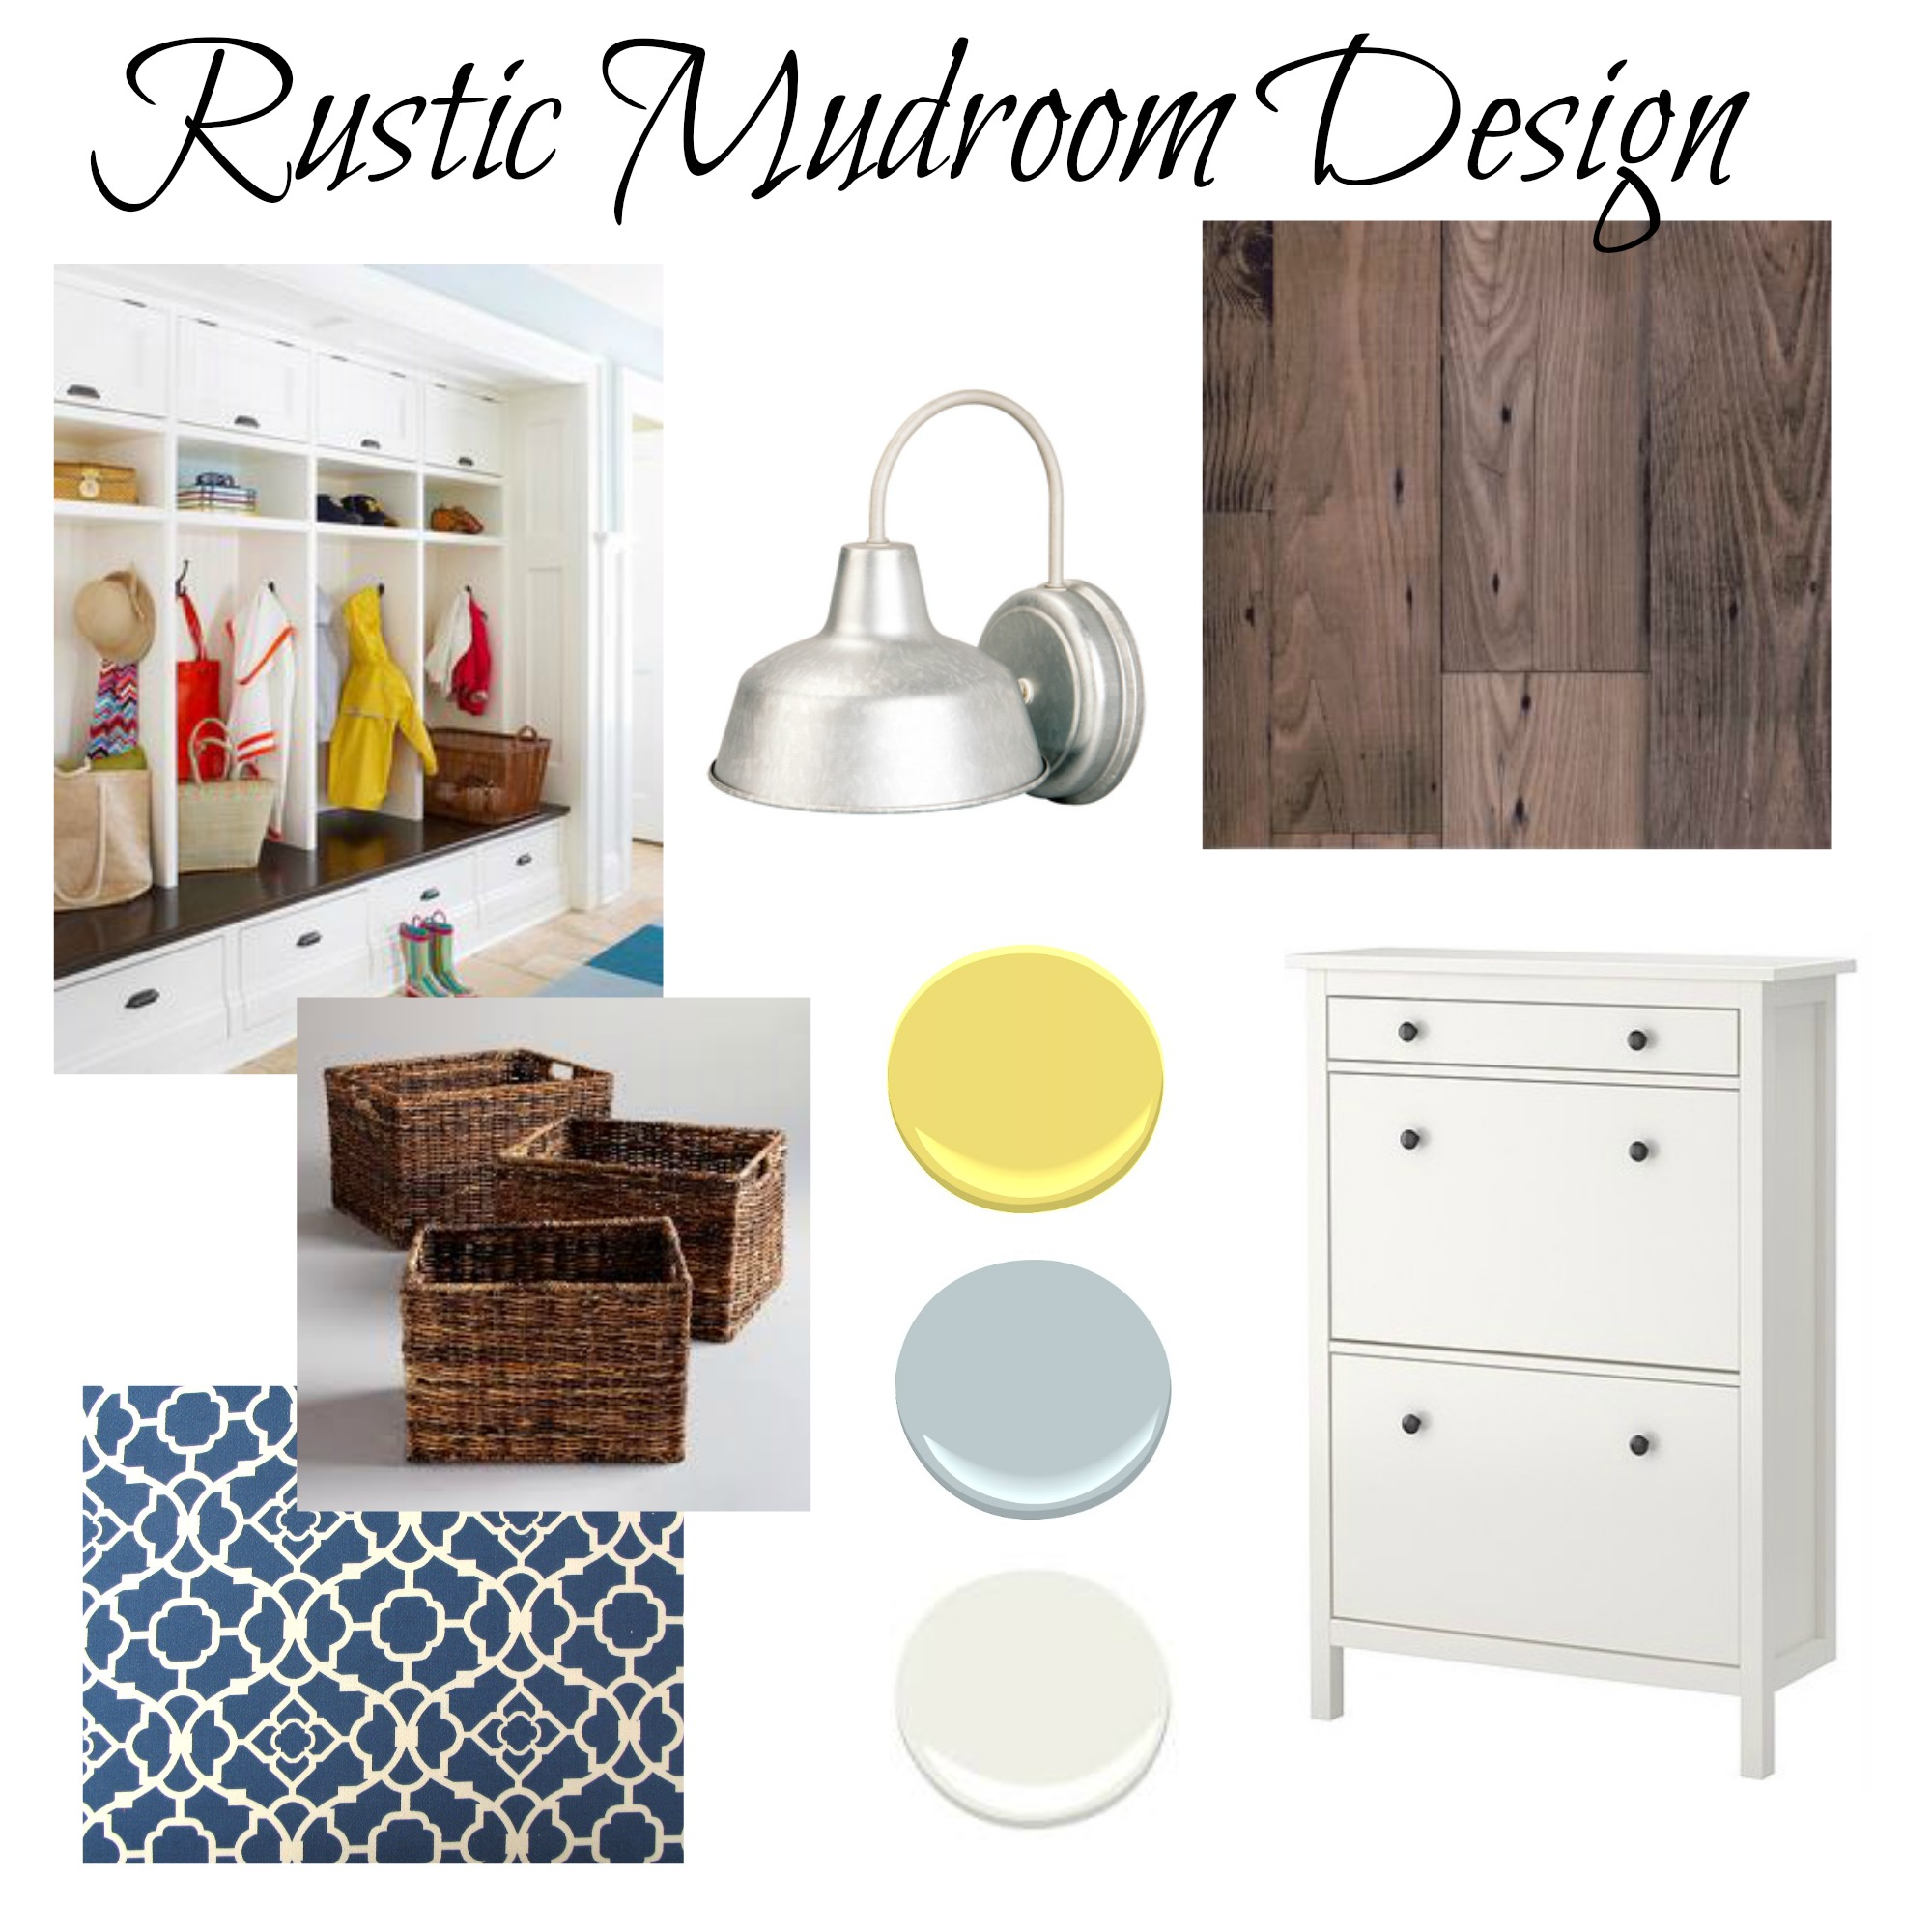 Mudroom addition plans old house to new home for Mudroom addition plans